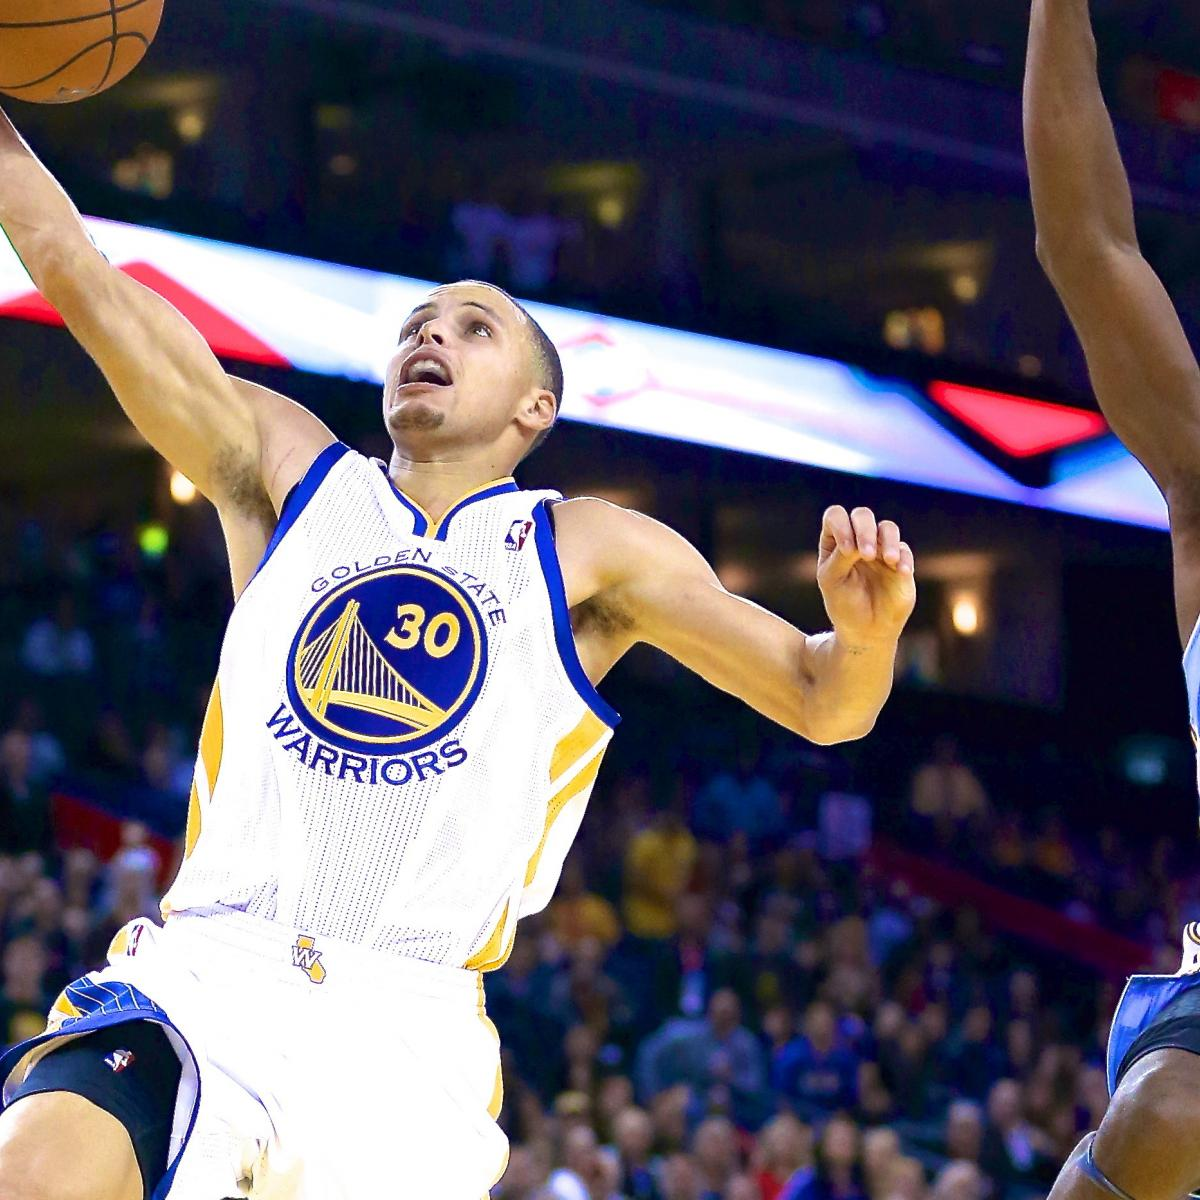 Nuggets Warriors Game: Denver Nuggets Vs. G.S. Warriors: Game 3 Live Score